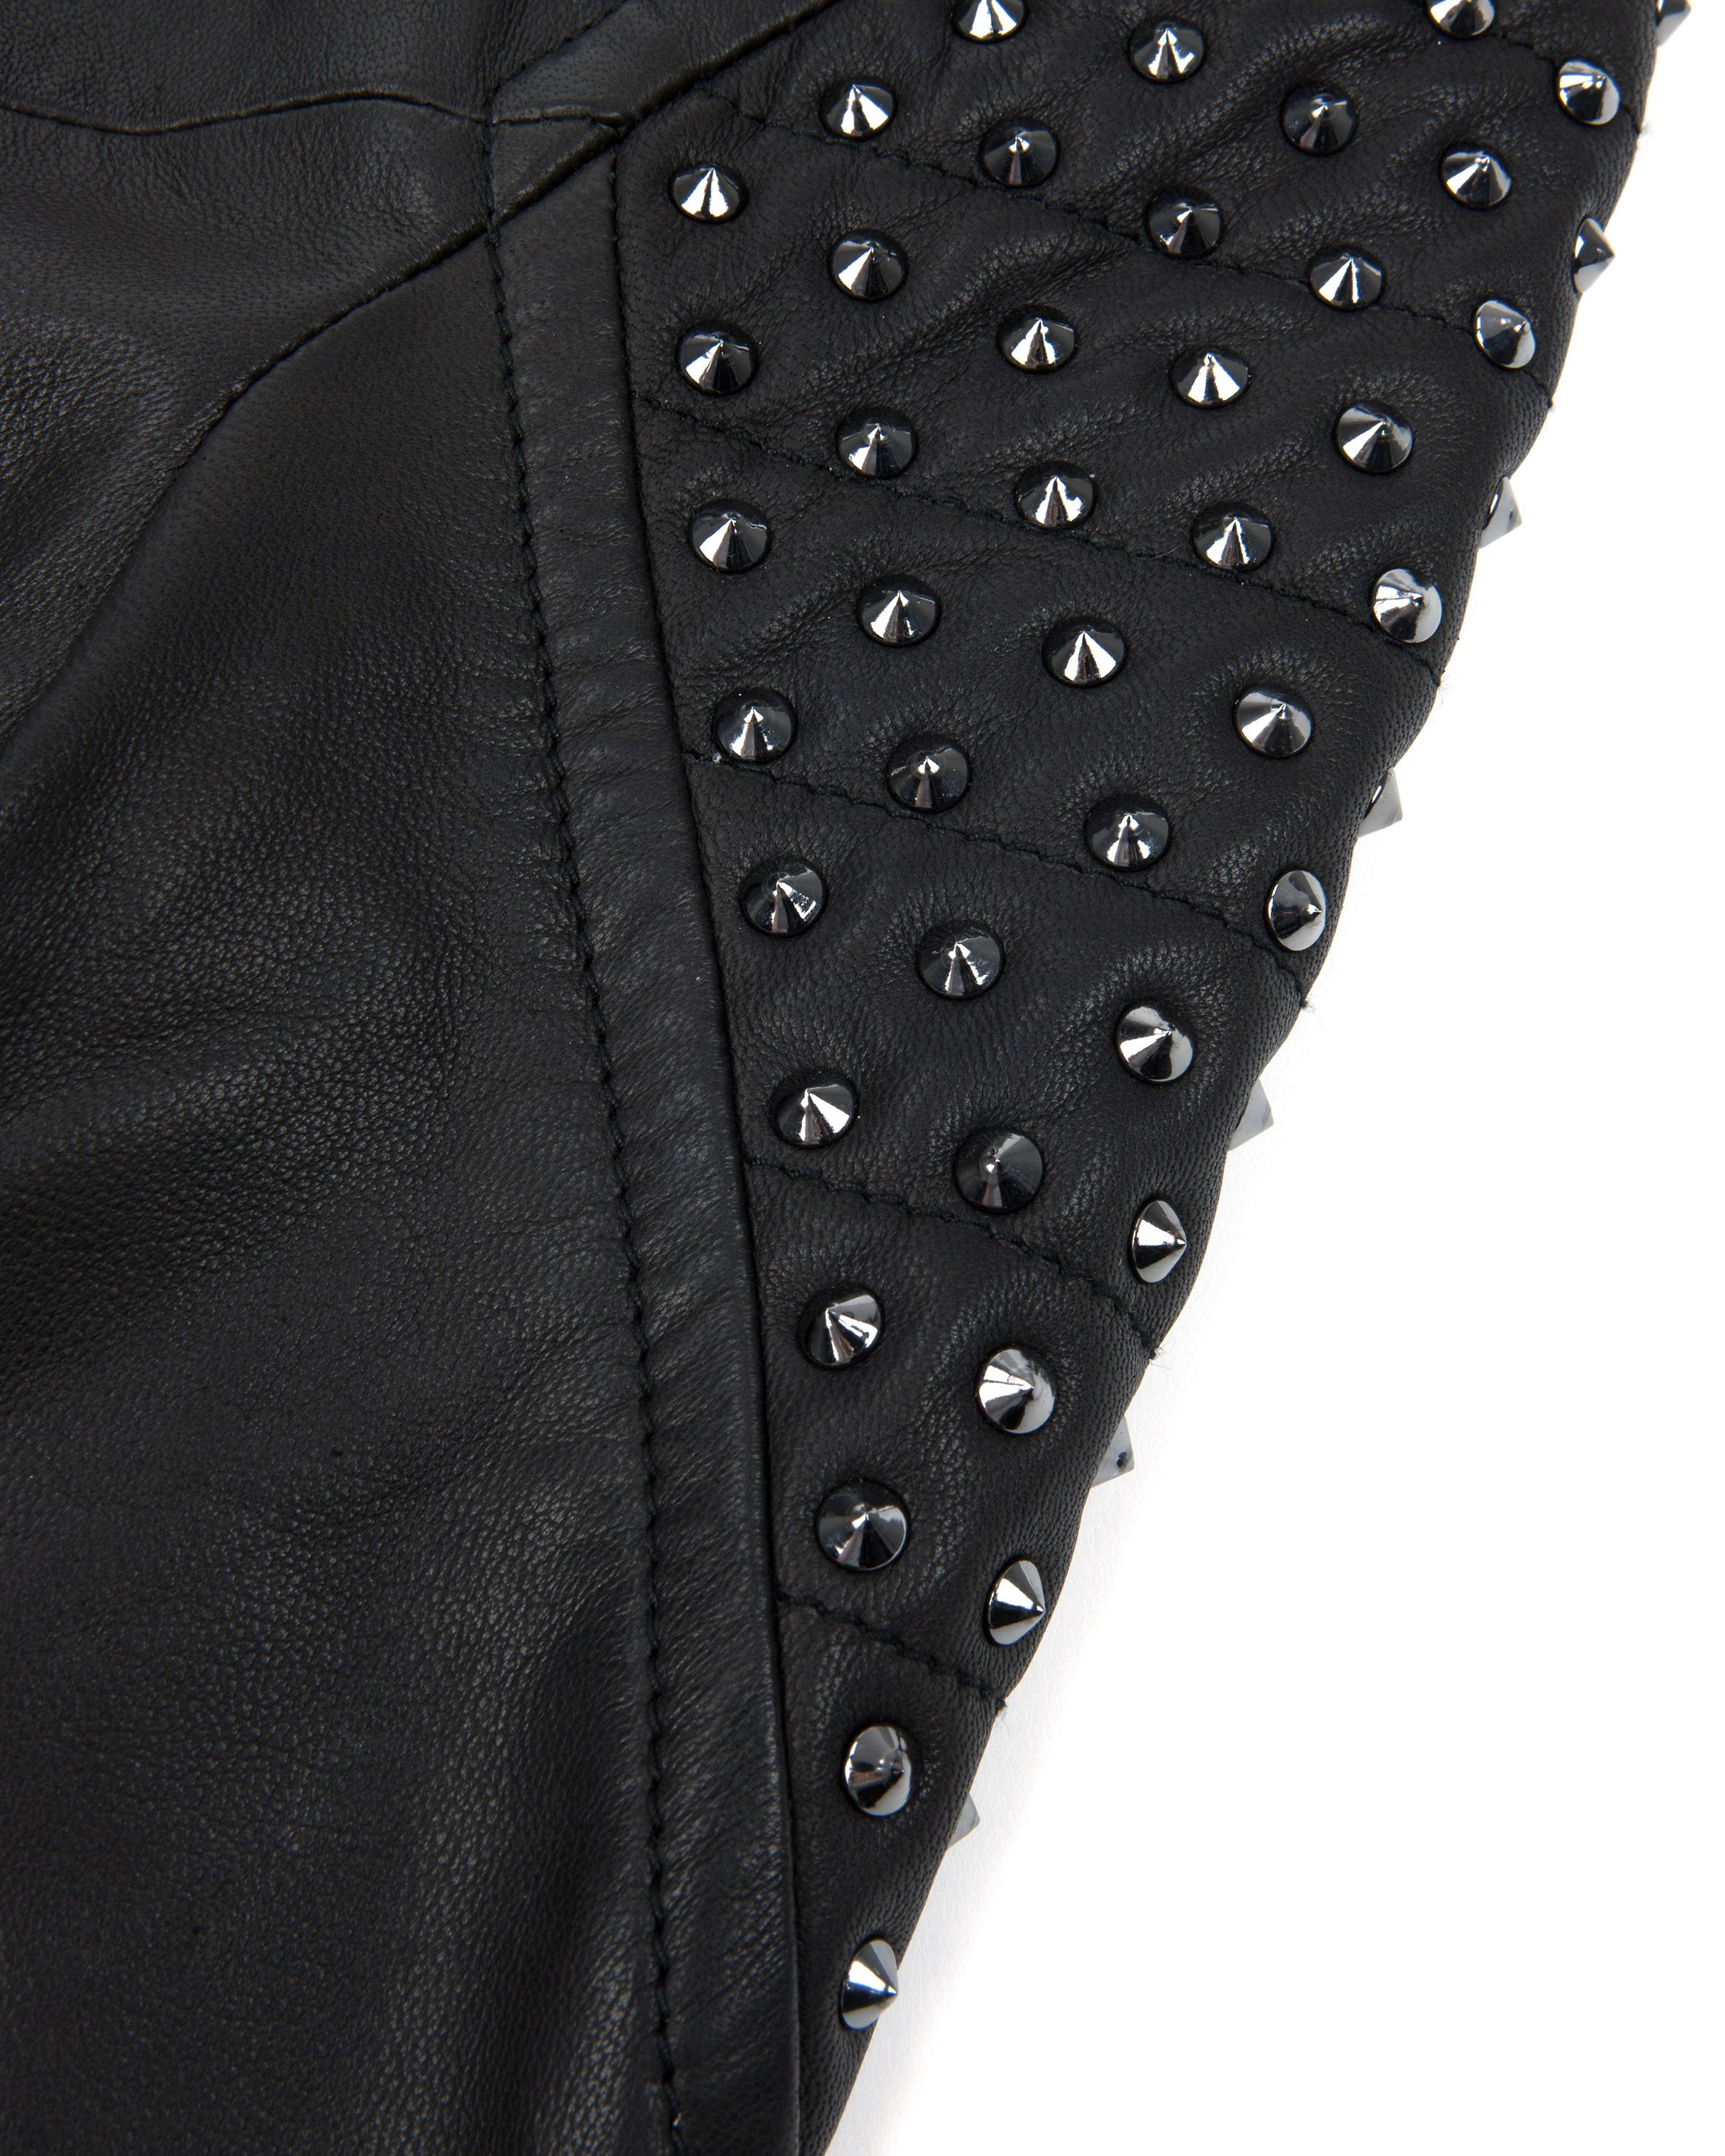 Ketton embellished leather jacket